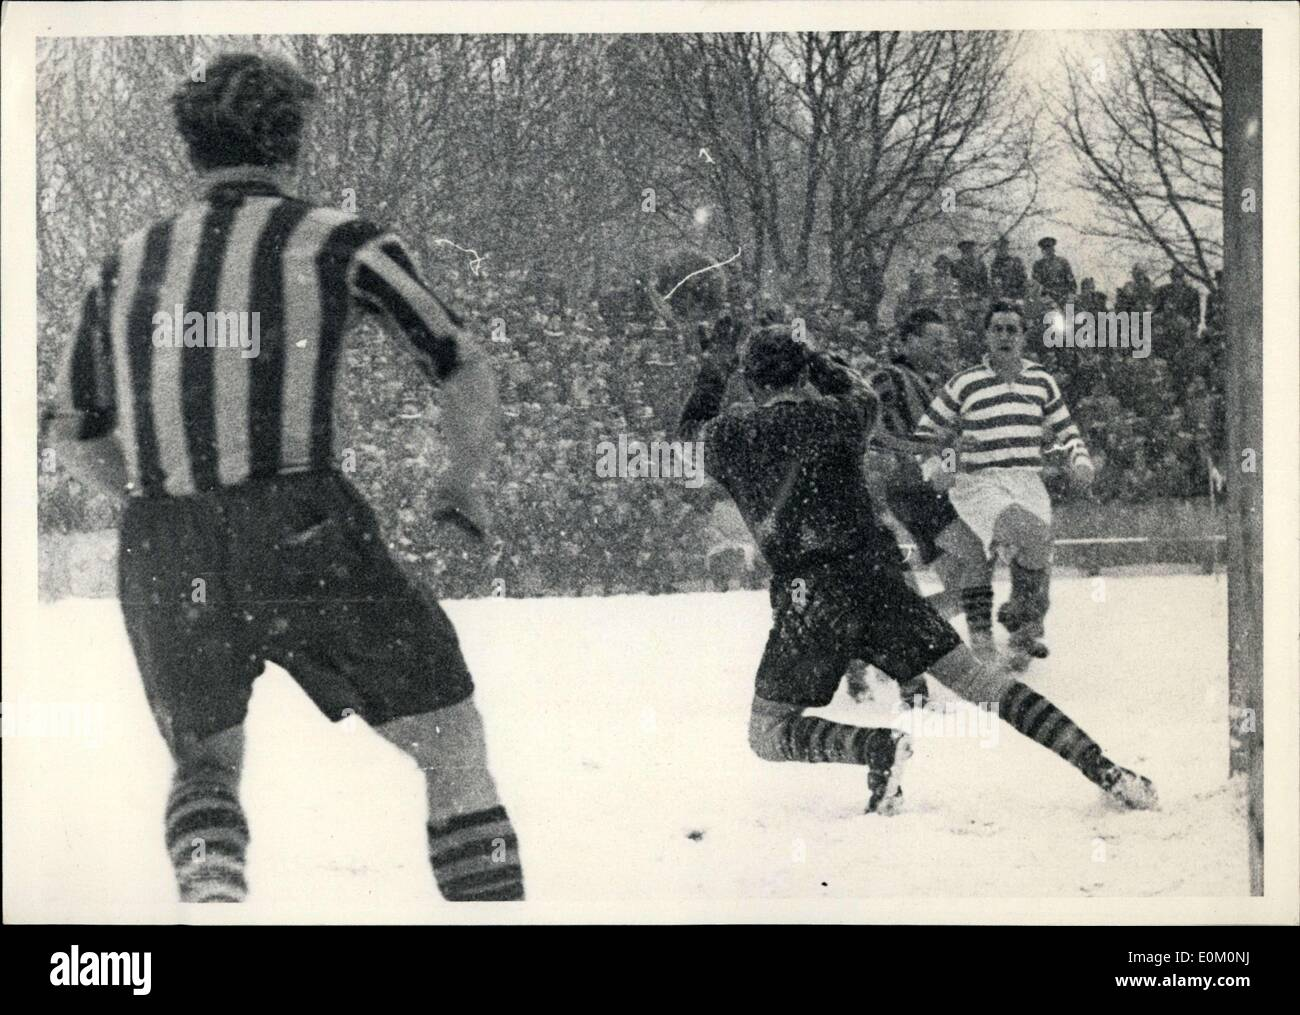 Feb. 10, 1953 - MSV Duiburg, formerly known as Meidericher SV, won a game against Aachen 4:0. - Stock Image